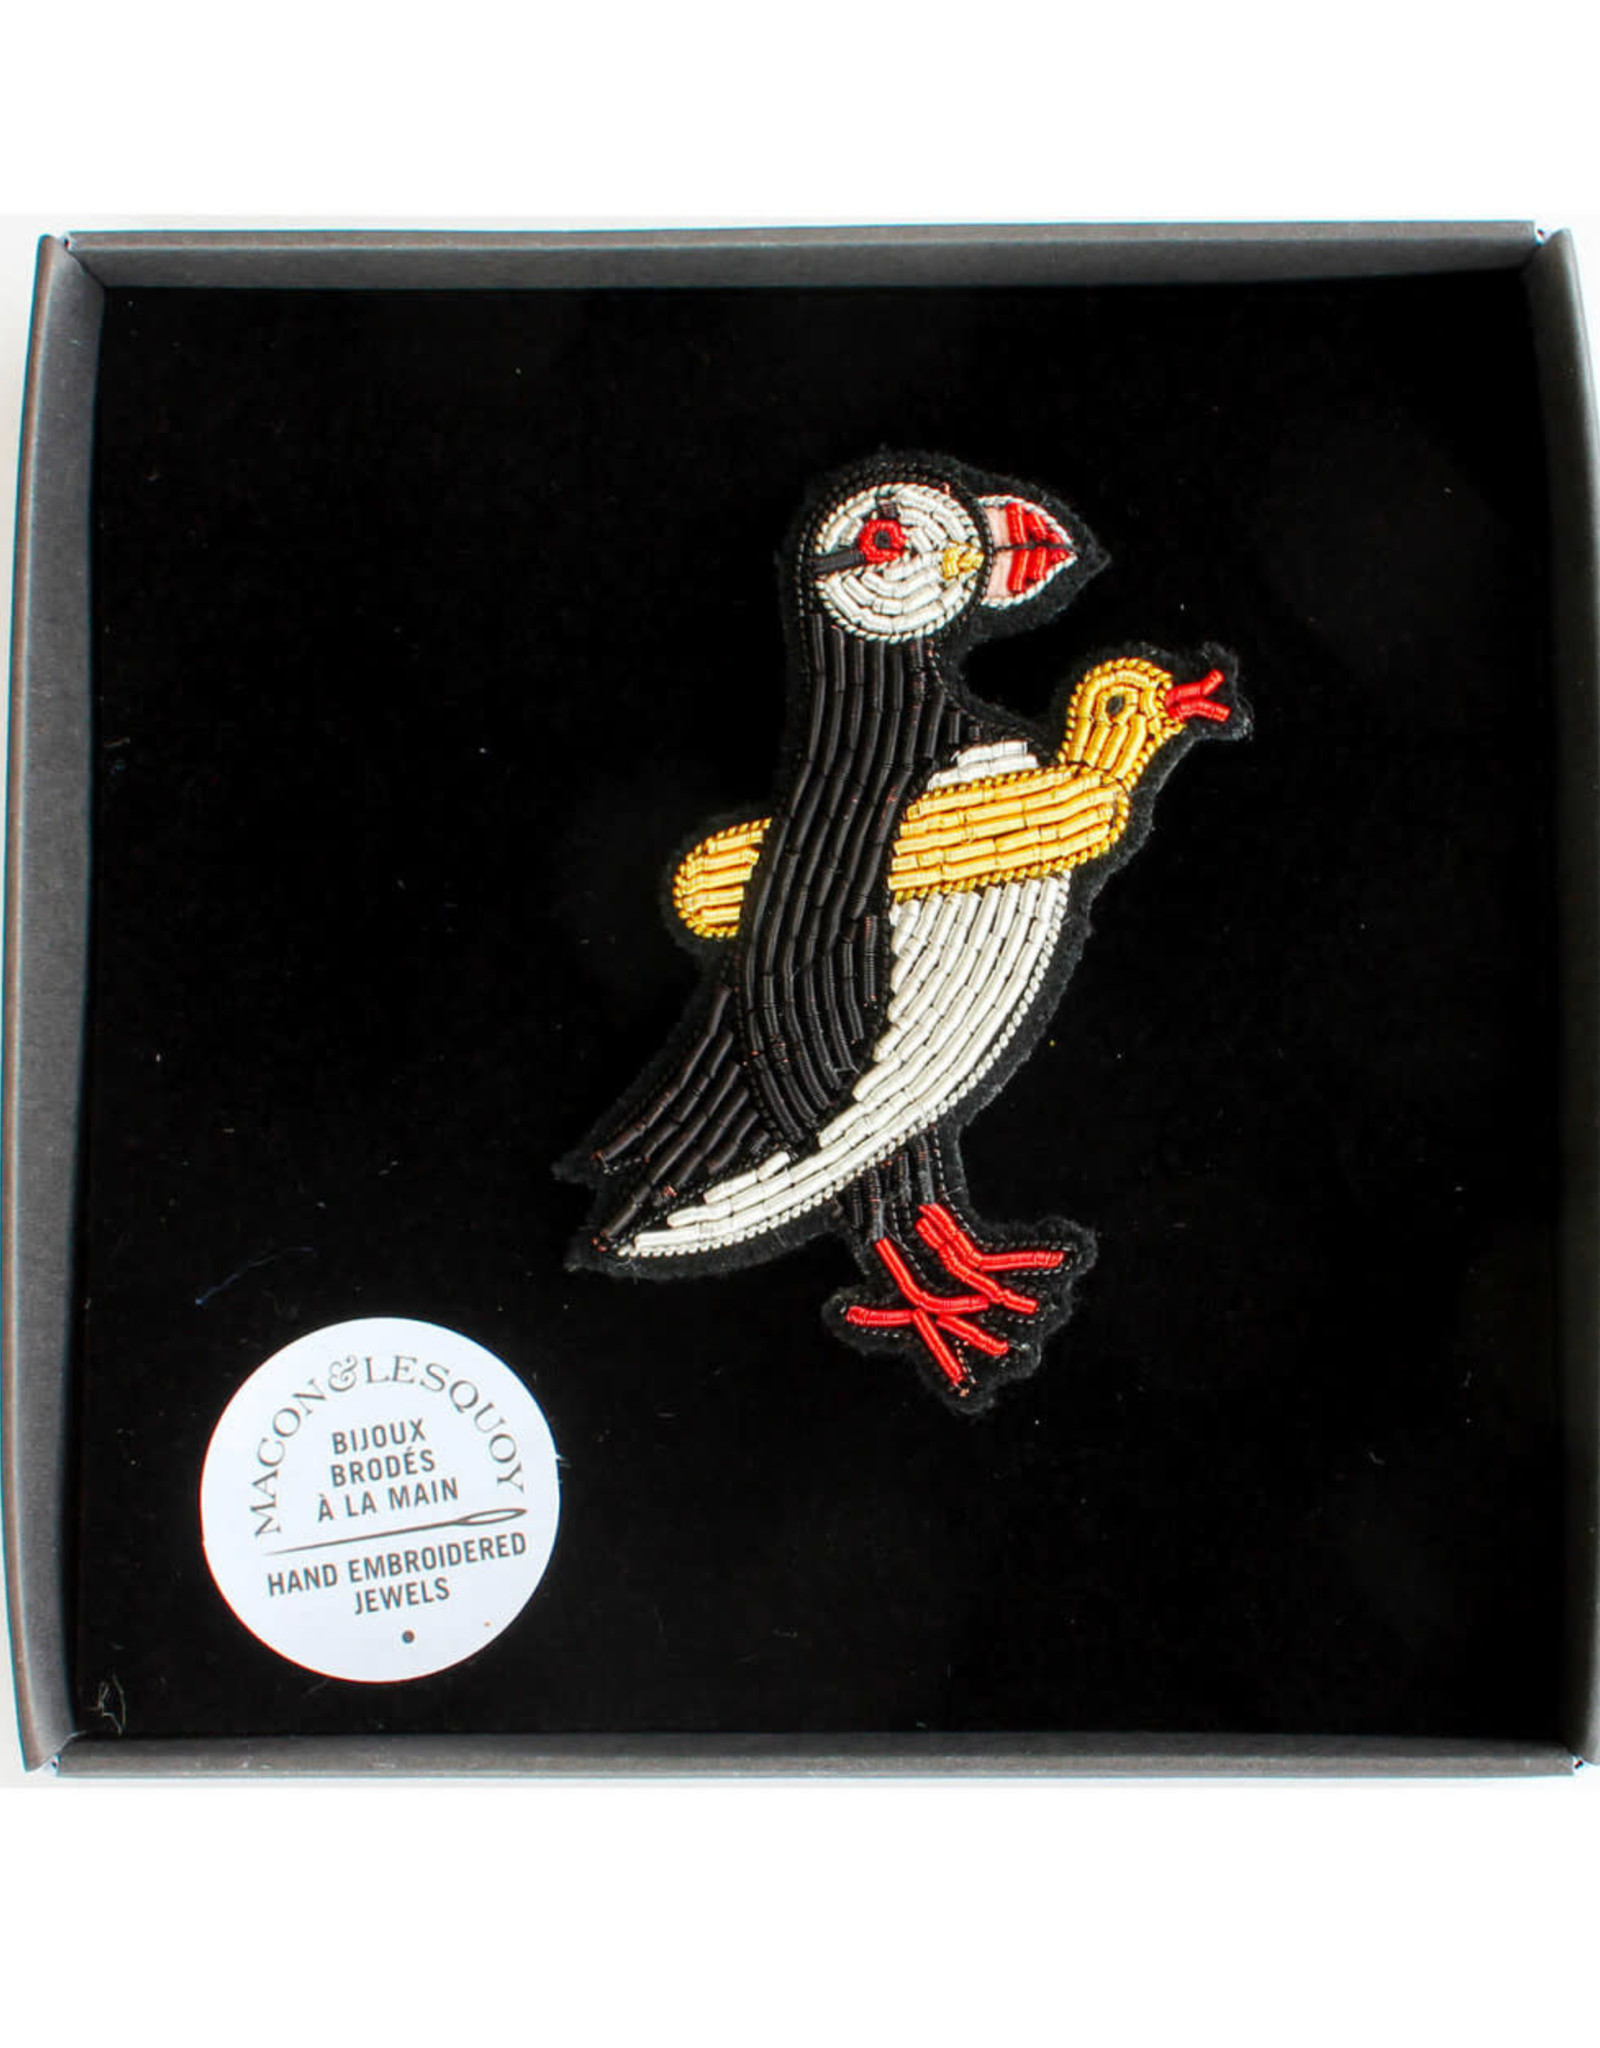 Macon & Lesquoy Brooch - Puffin